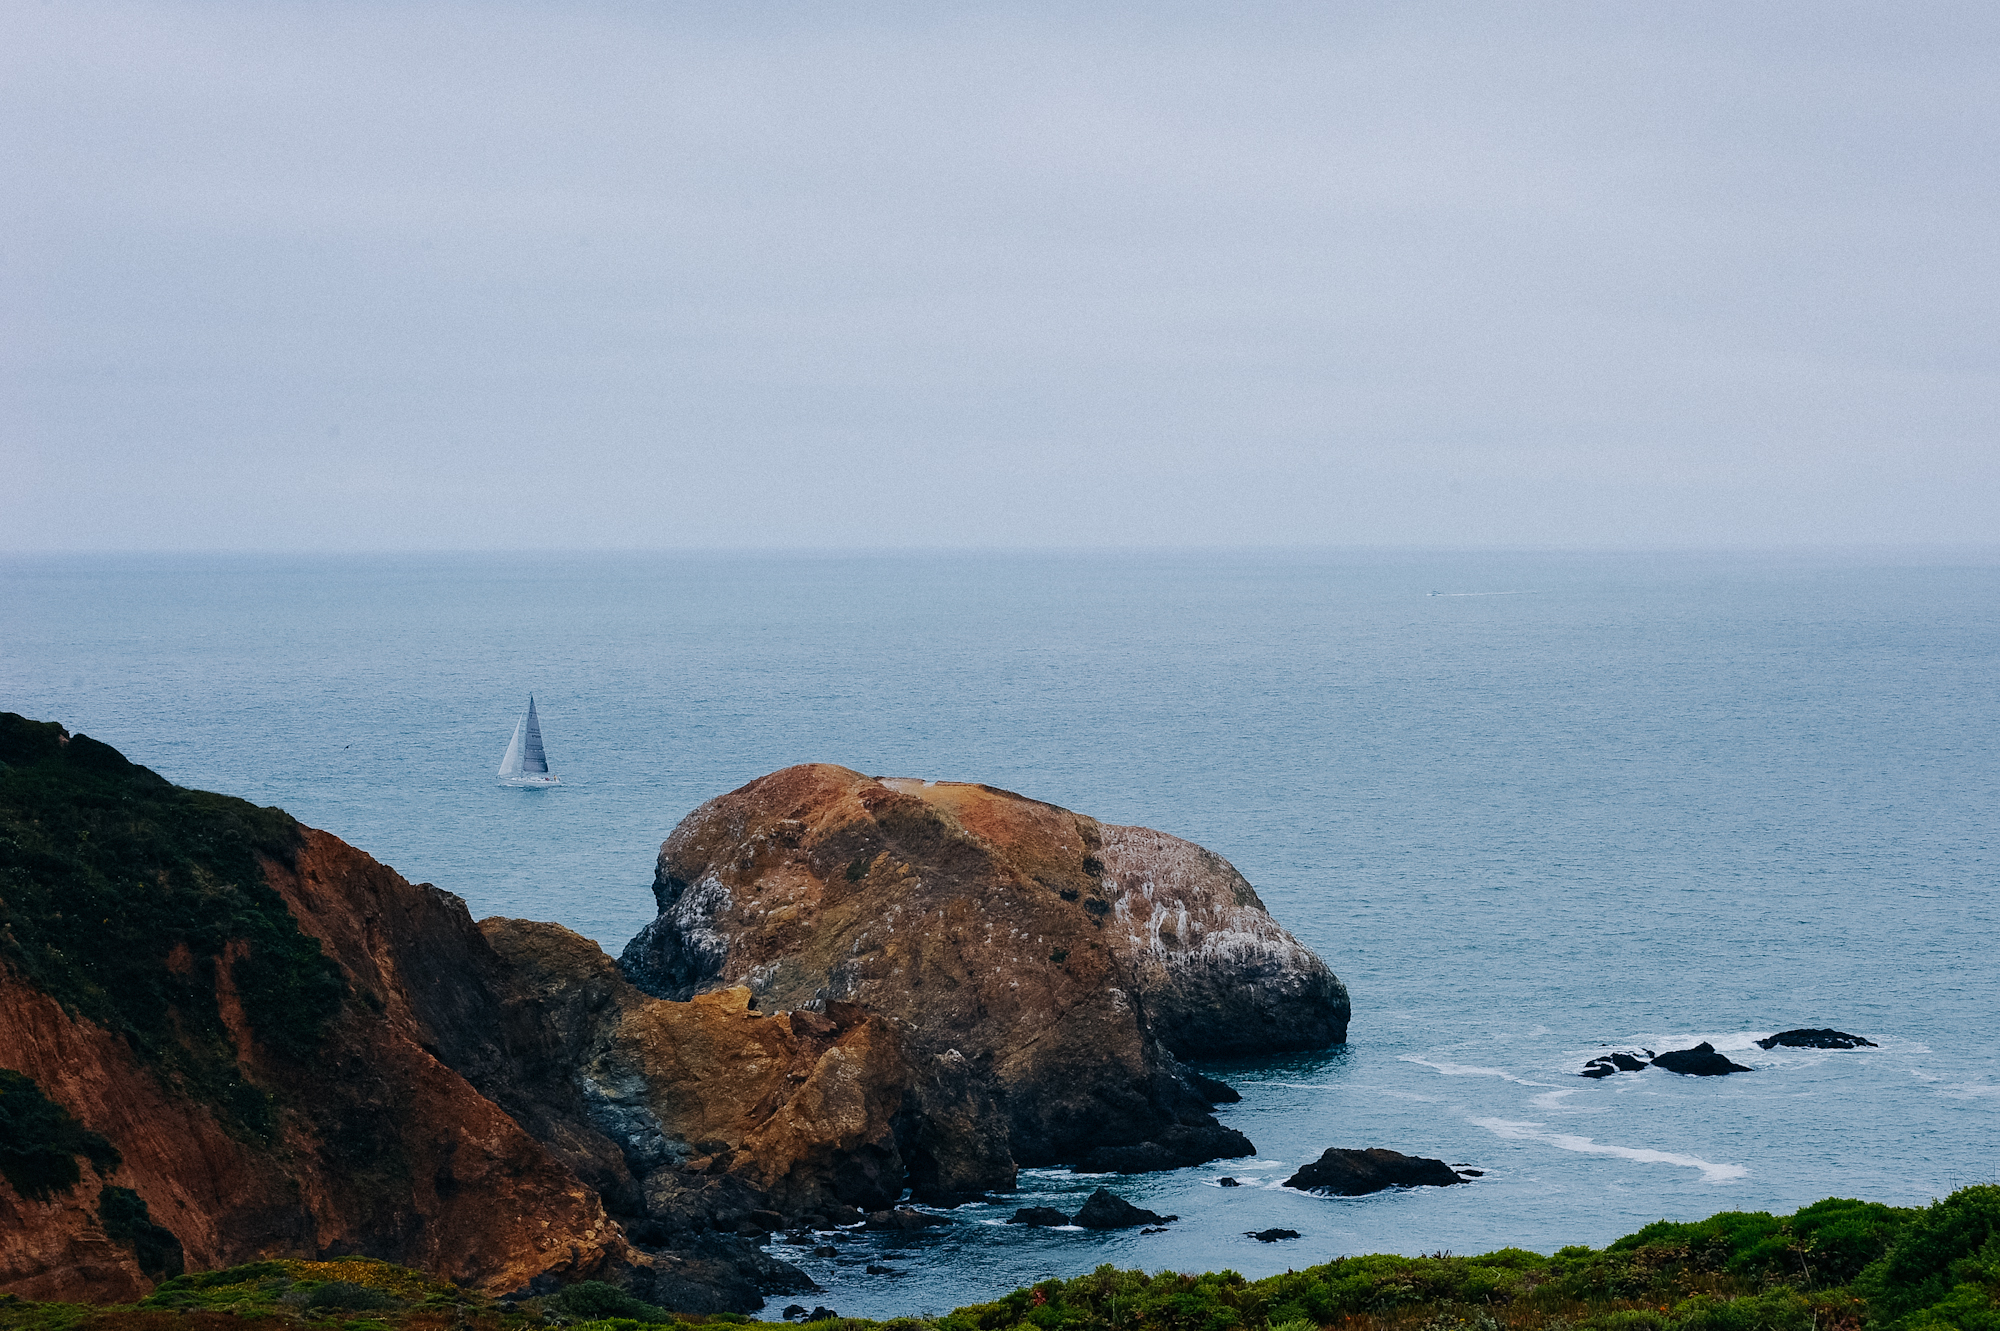 As I was walking down to the cove, I caught a sailboat passing through a dip in the rocks.